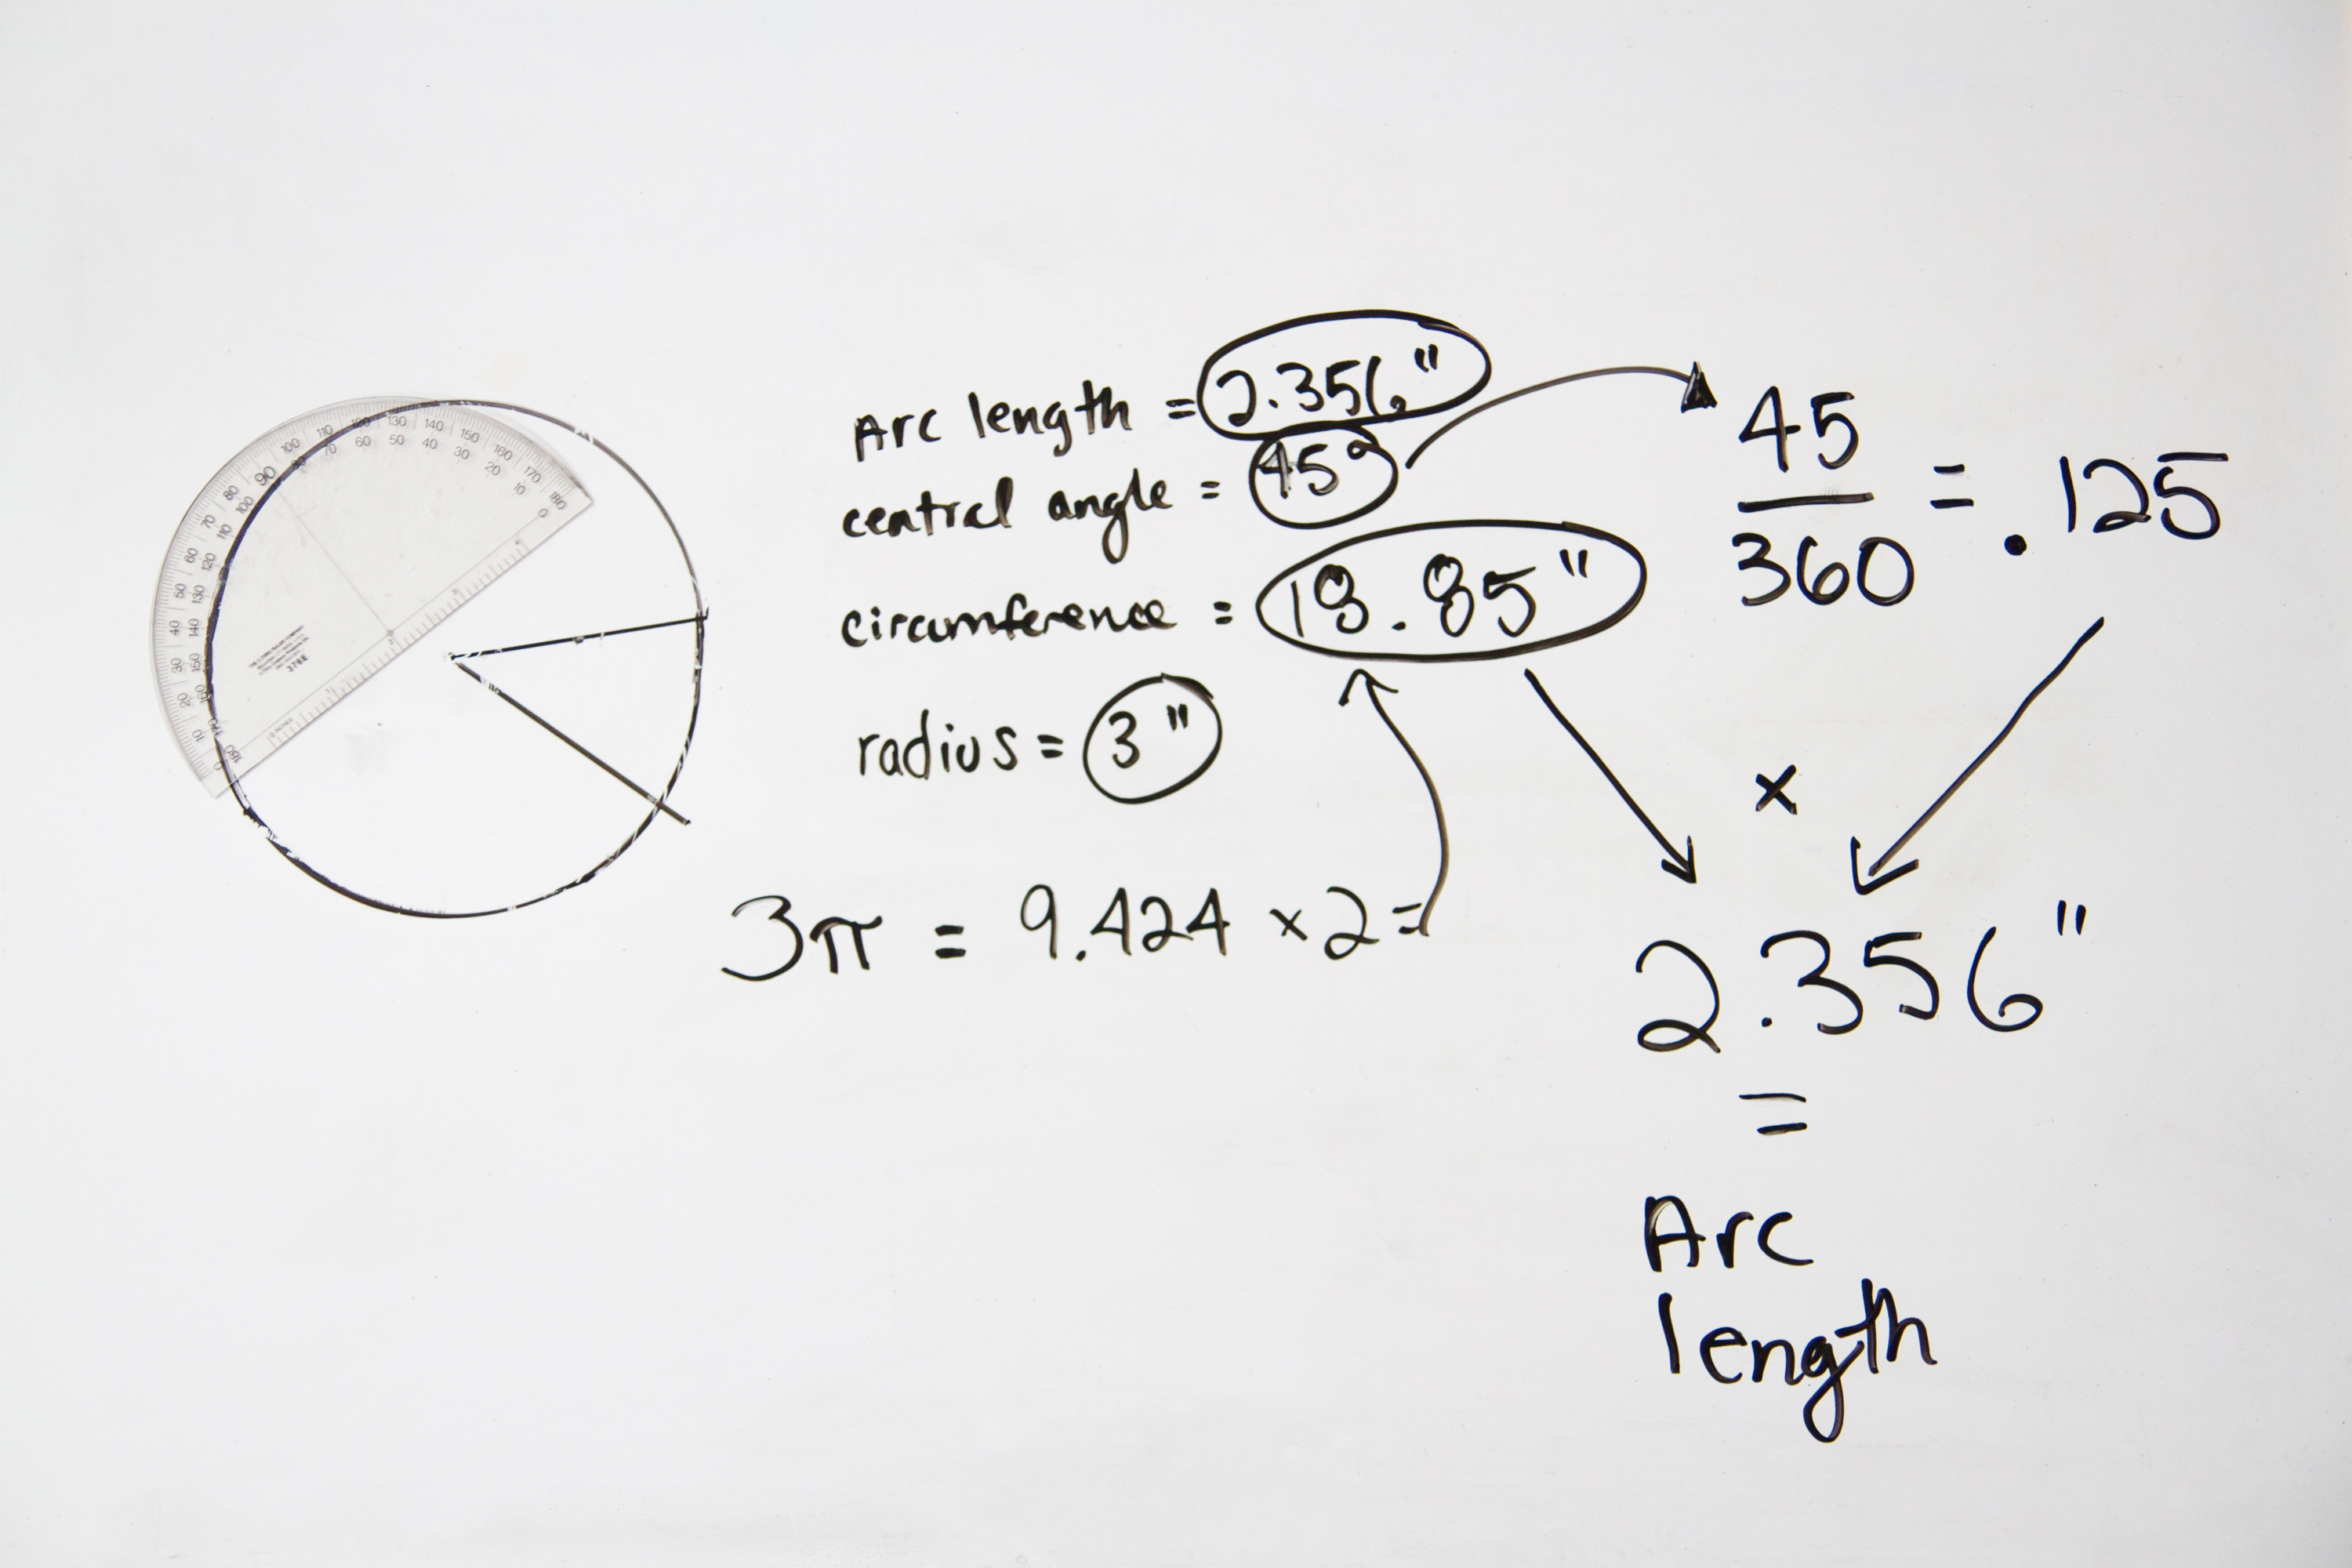 How To Calculate The Arc Length, Central Angle, And Circumference Of A  Circle  Sciencing